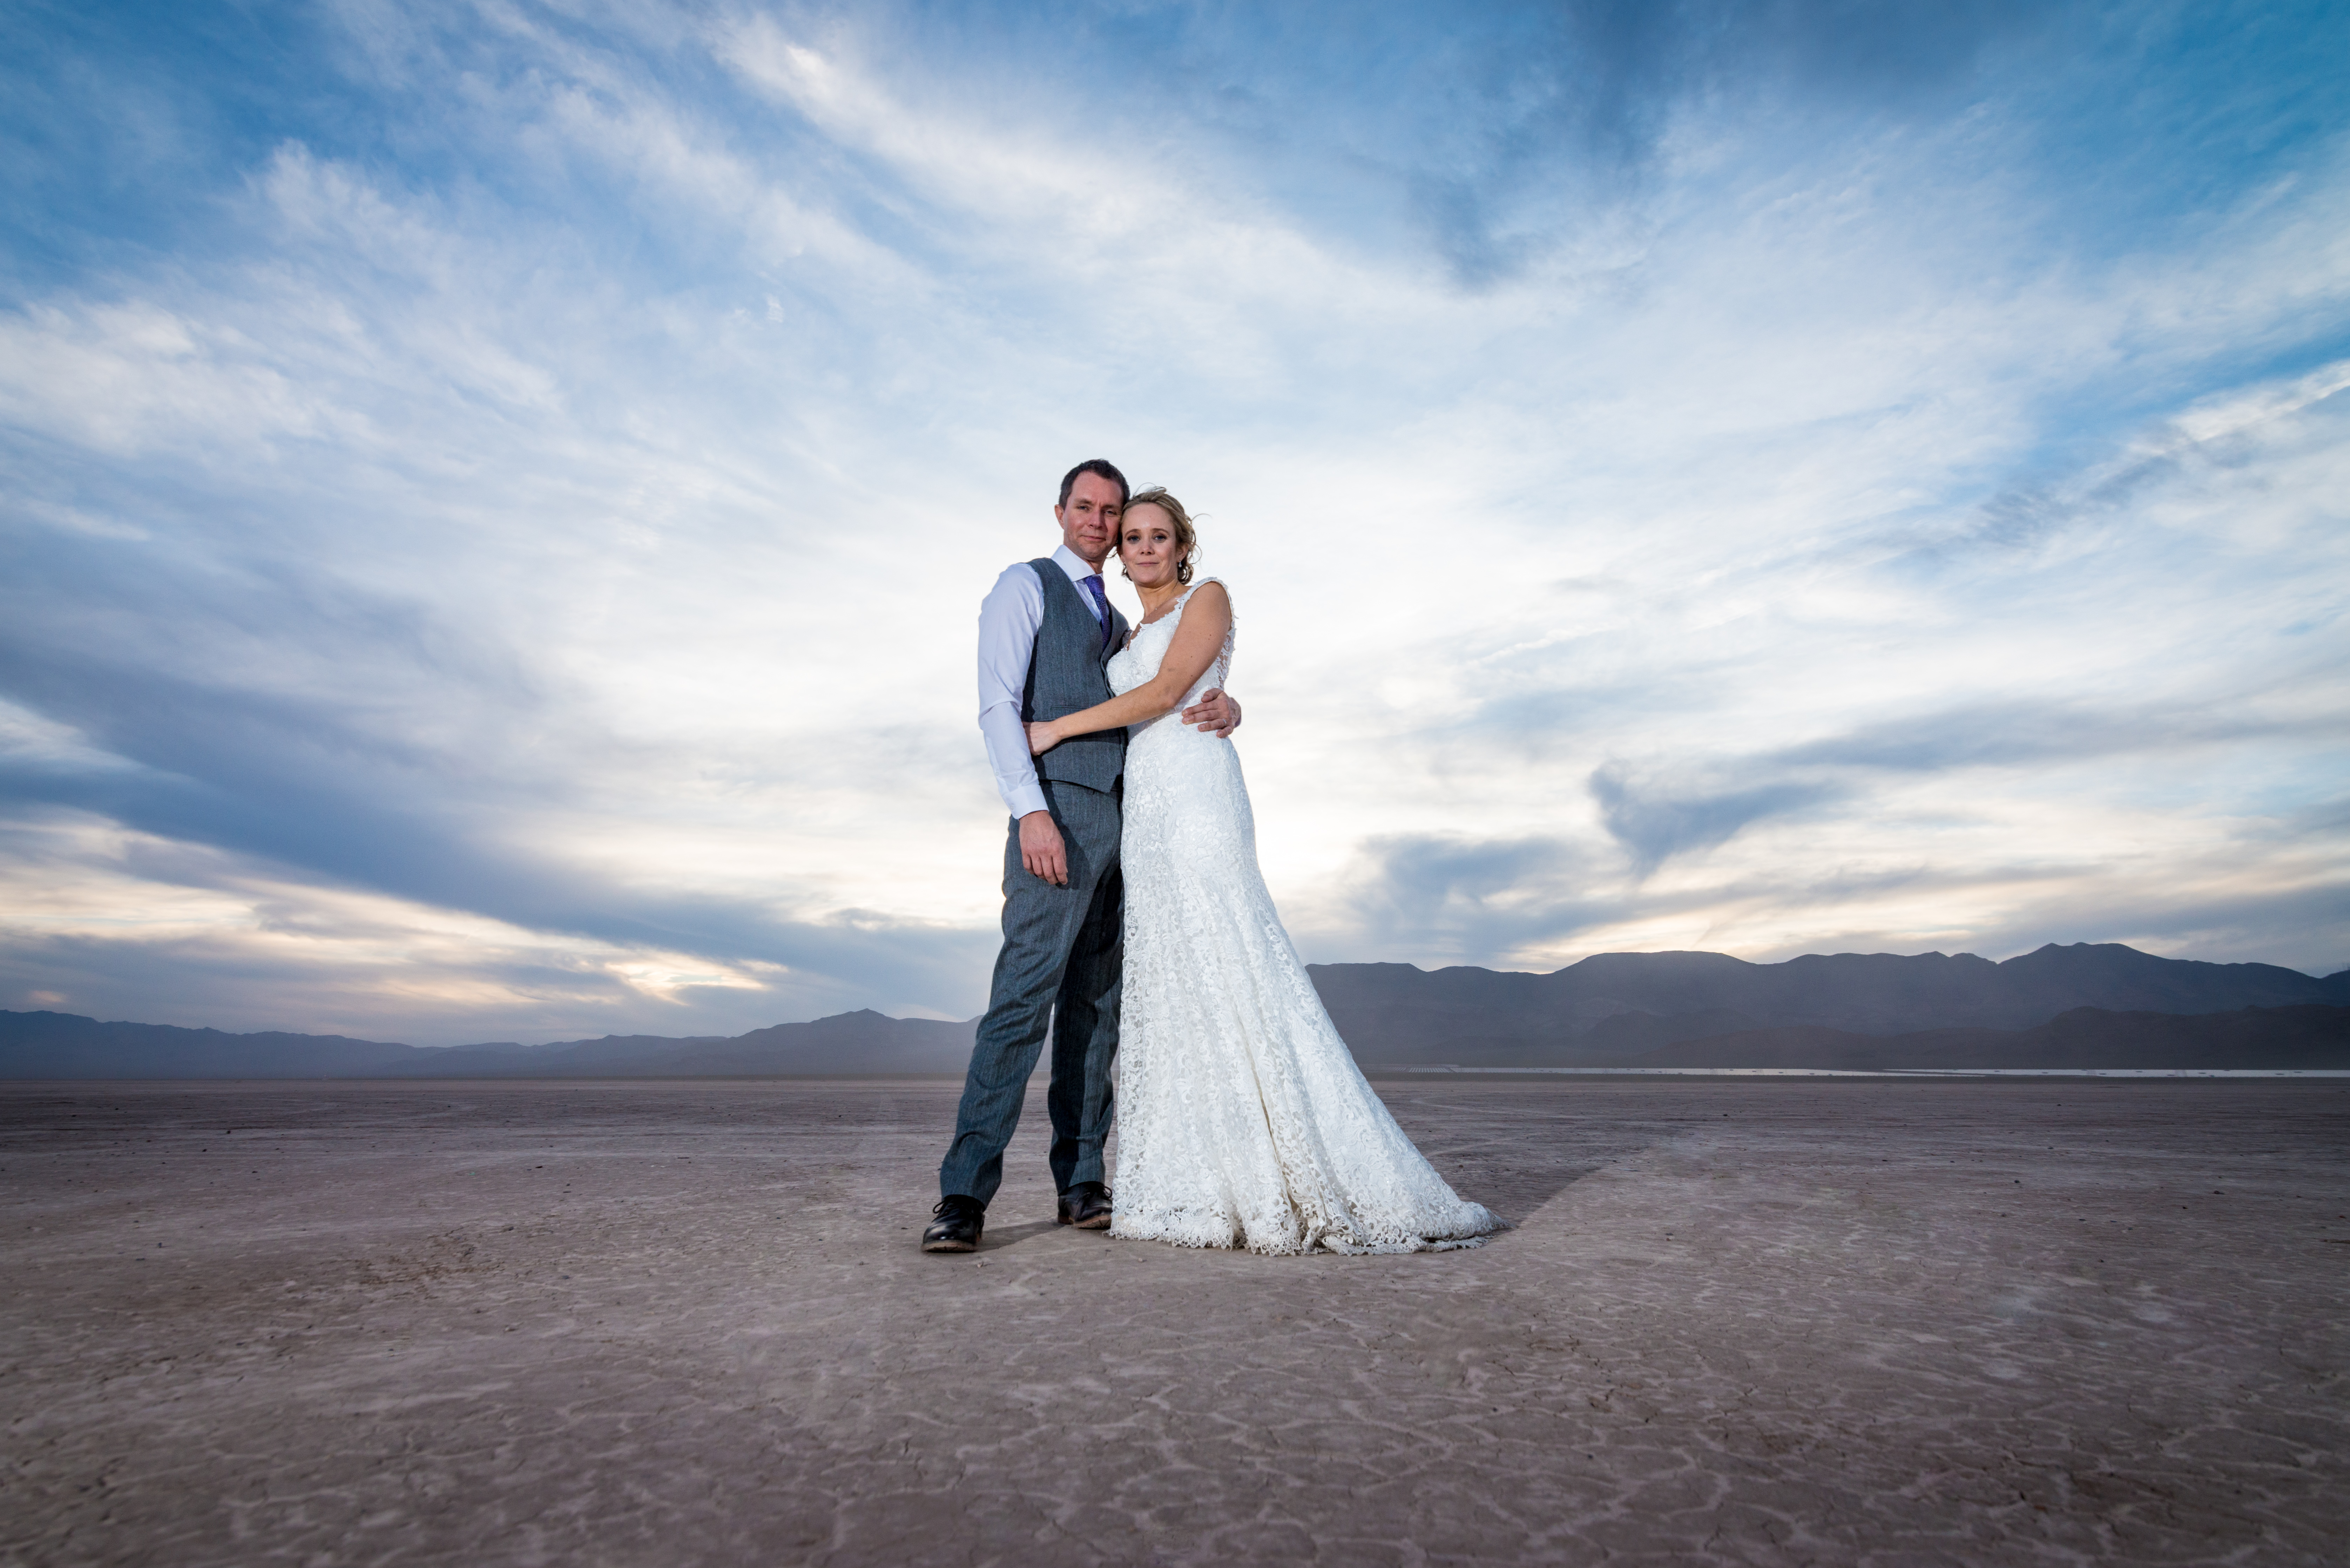 Adam_Sternberg_Photography_weddings_05